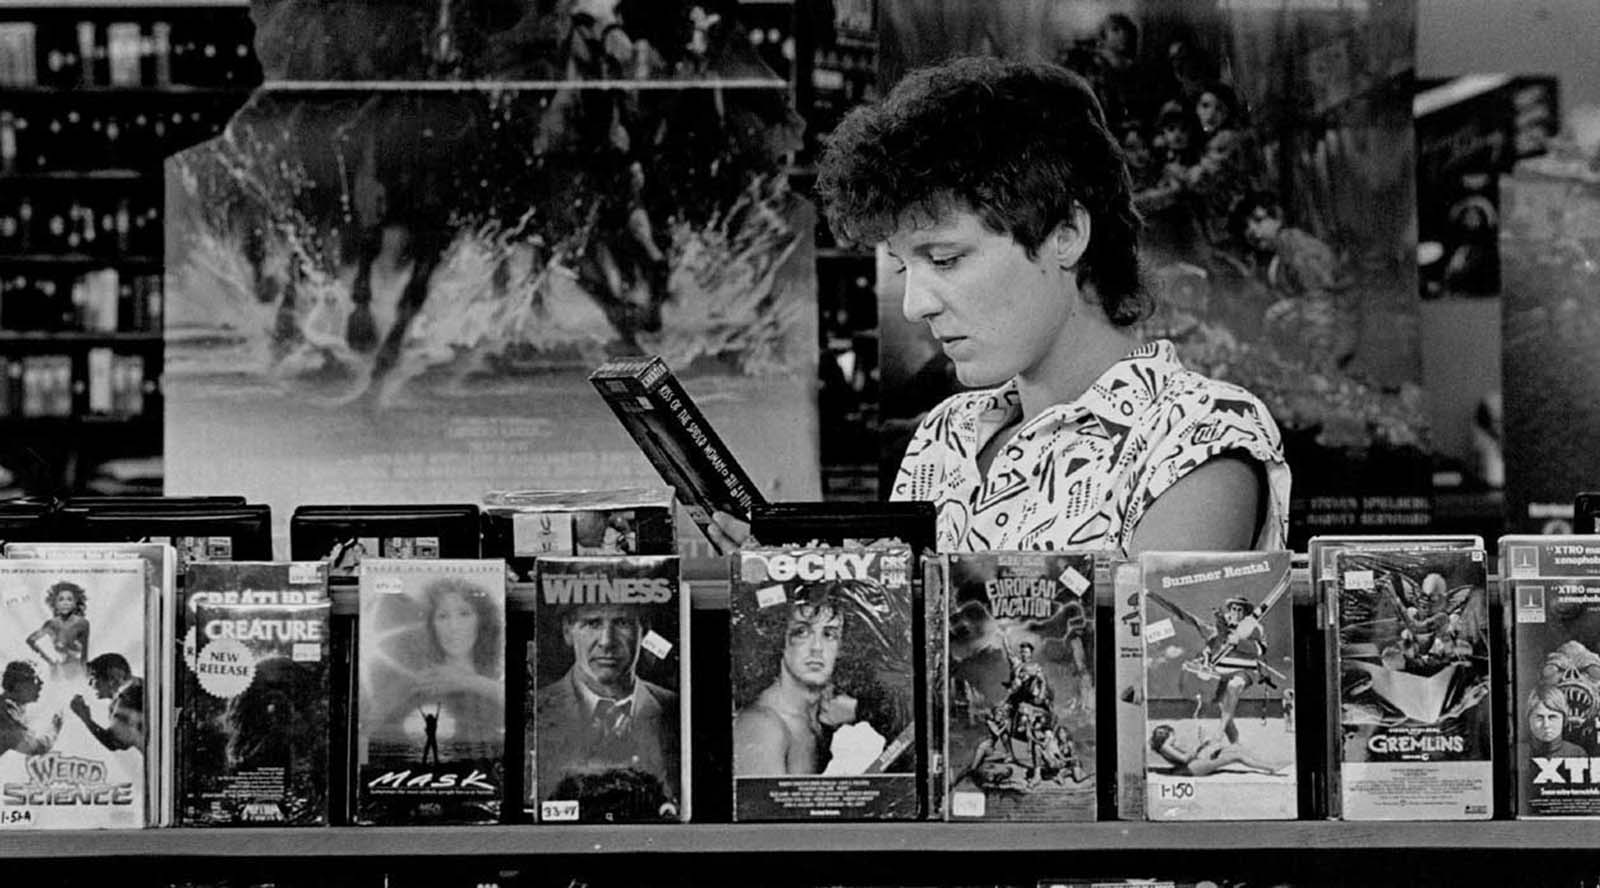 Employee Tammy Swier looks at VCR cassettes tapes at Colfax Video. 1986.